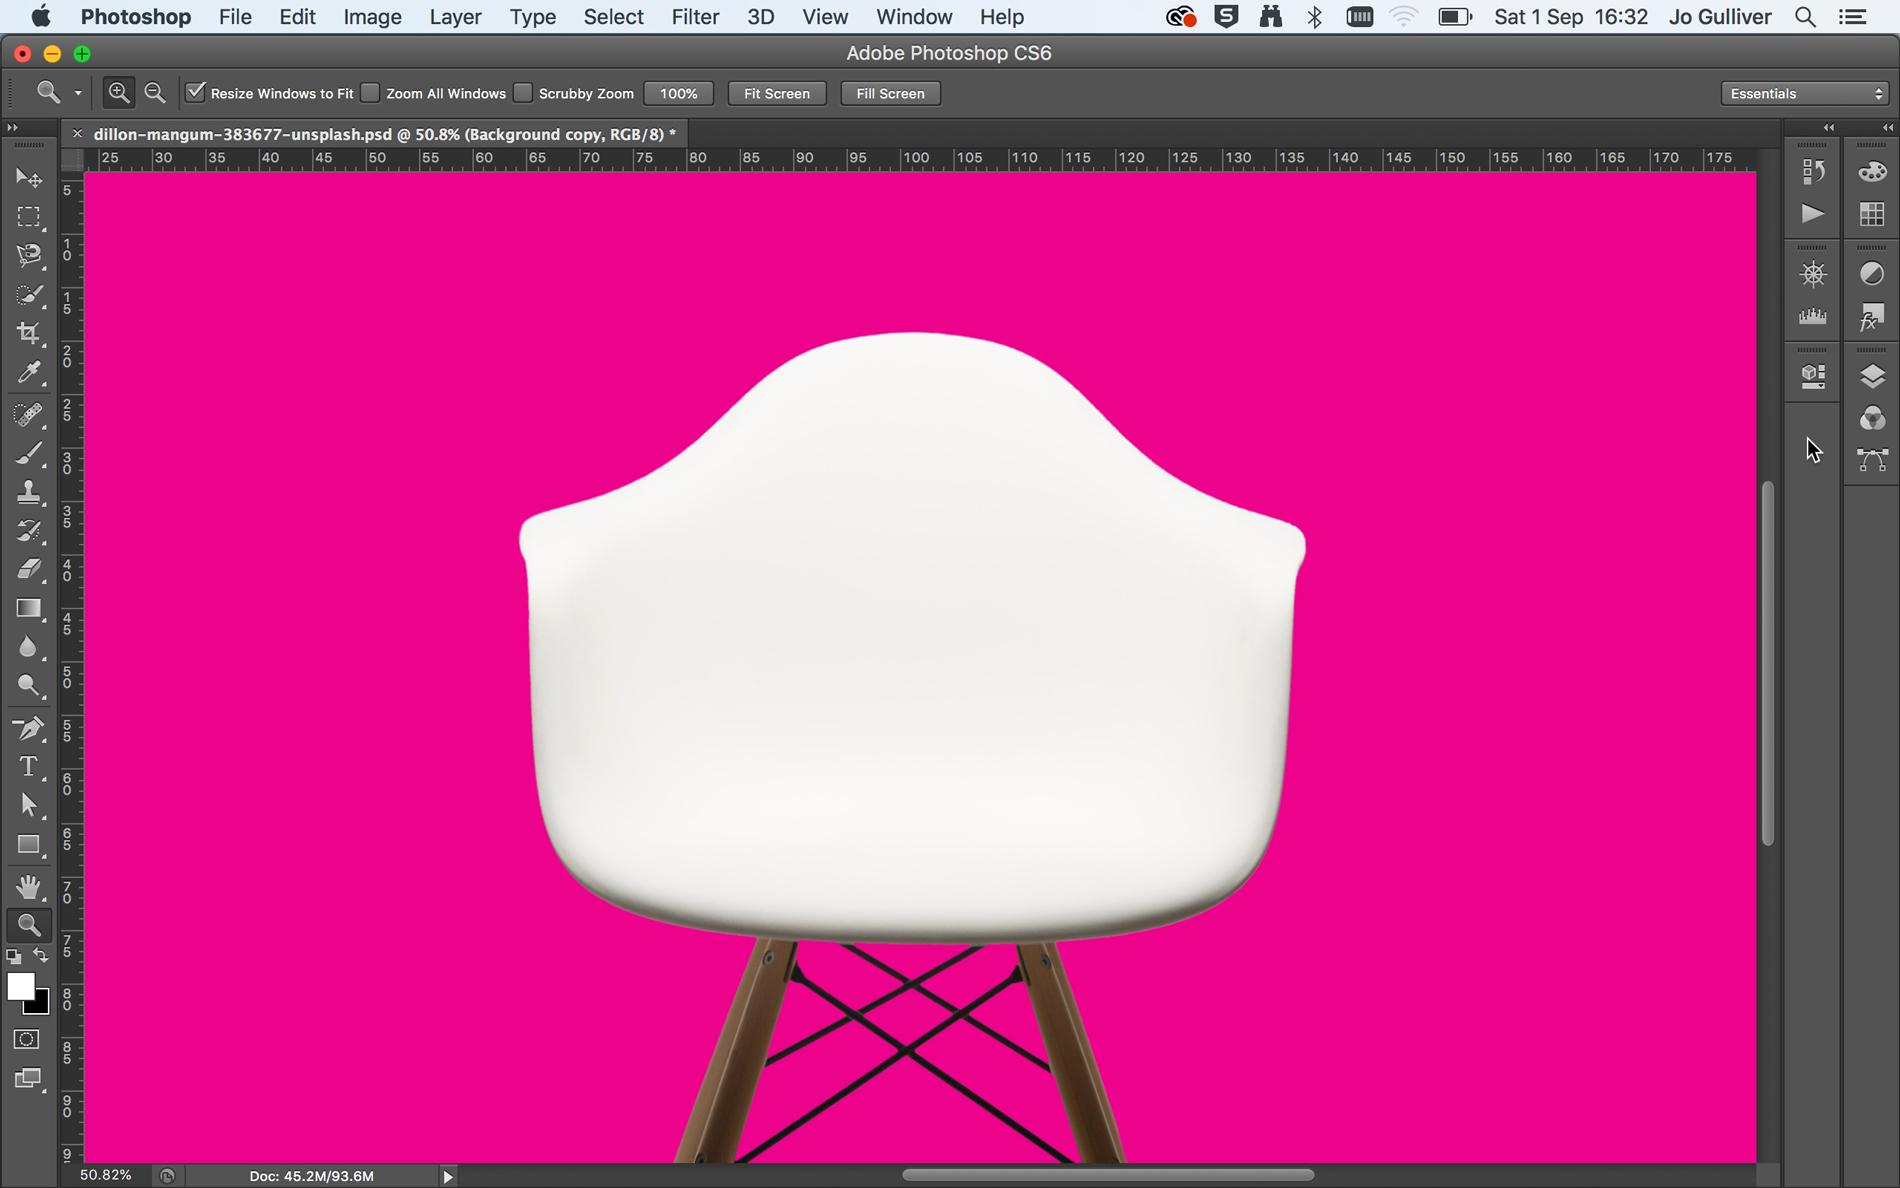 Screenshot of a white chair on a pink background in Photoshop